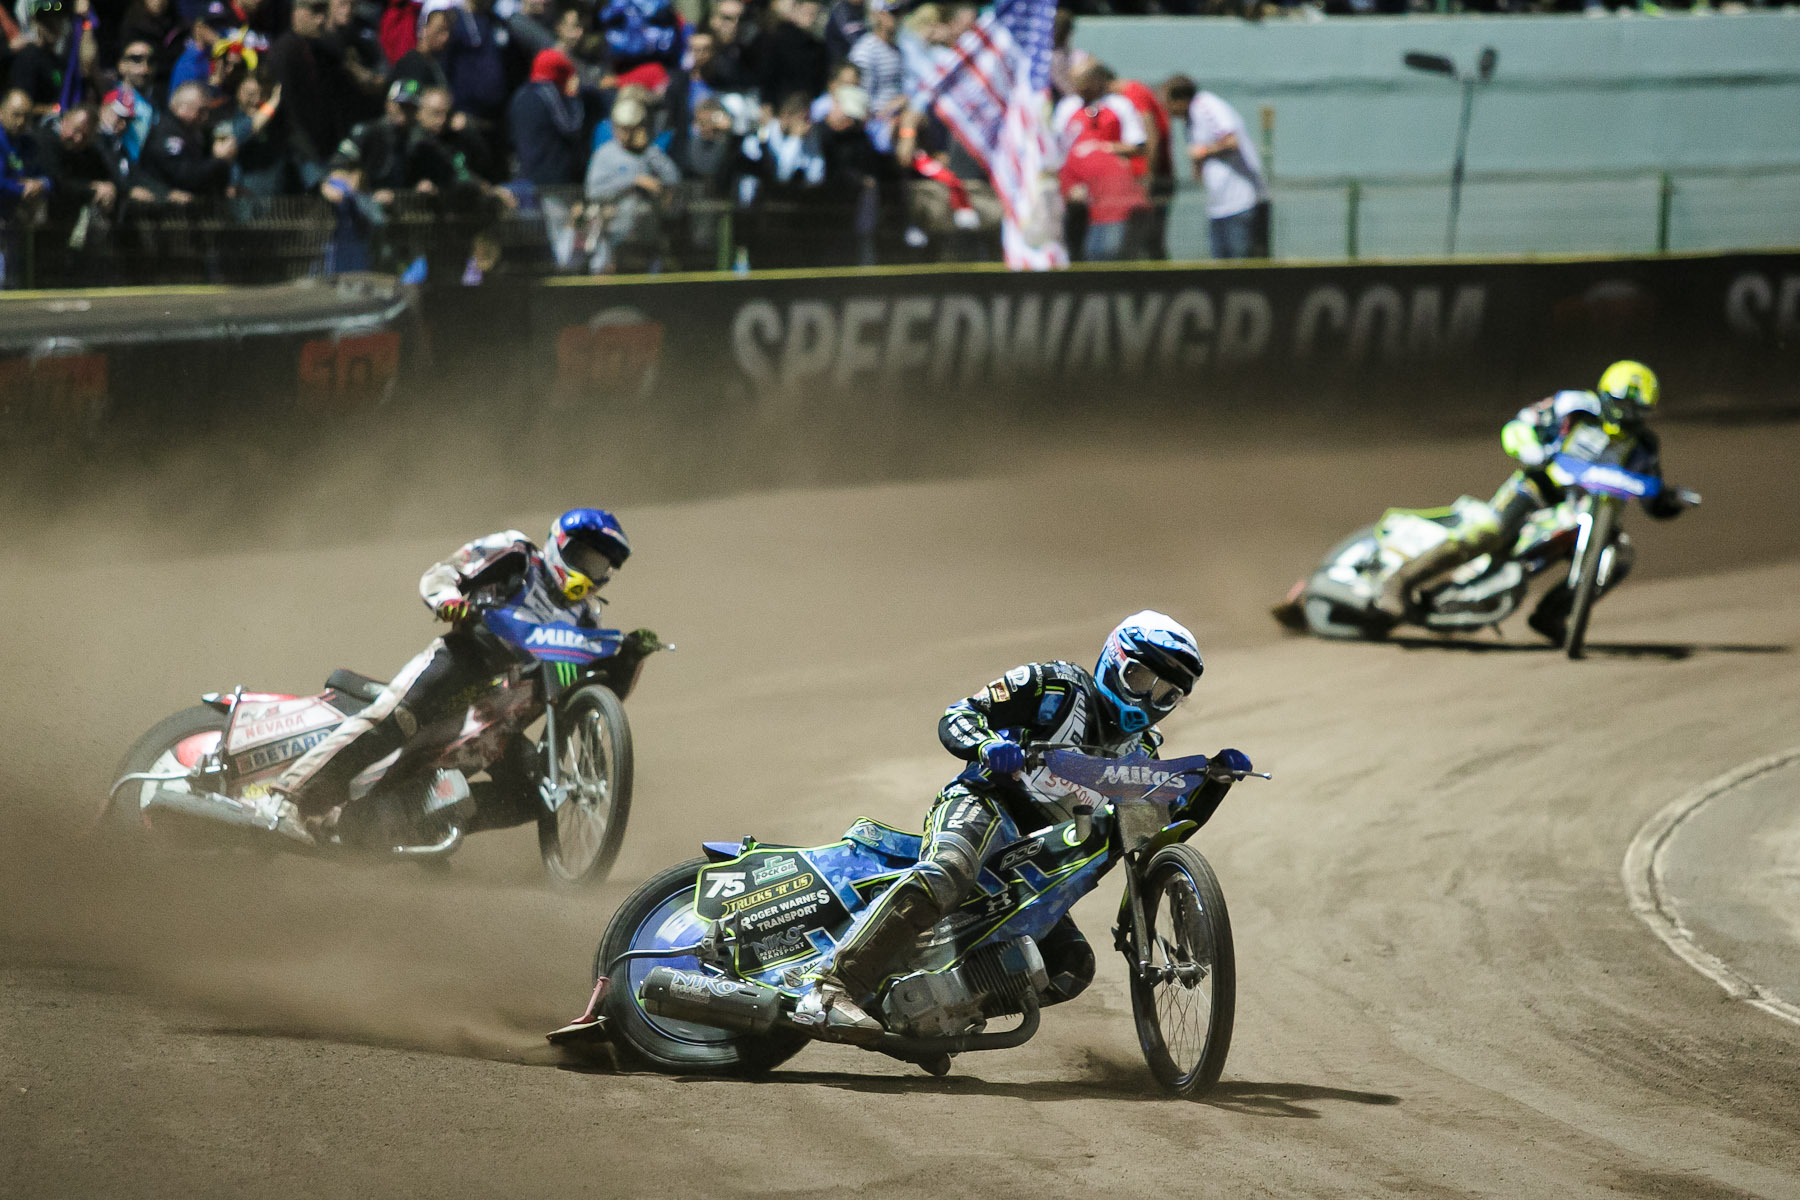 Troy Batchelor of Australia (front), Maciej Janowski of Poland and Chris Holder of Australia compete in the Mitas Slovenian FIM Speedway Grand Prix at Matija Gubec Stadium in Krsko, Slovenia, Sep. 12, 2015.